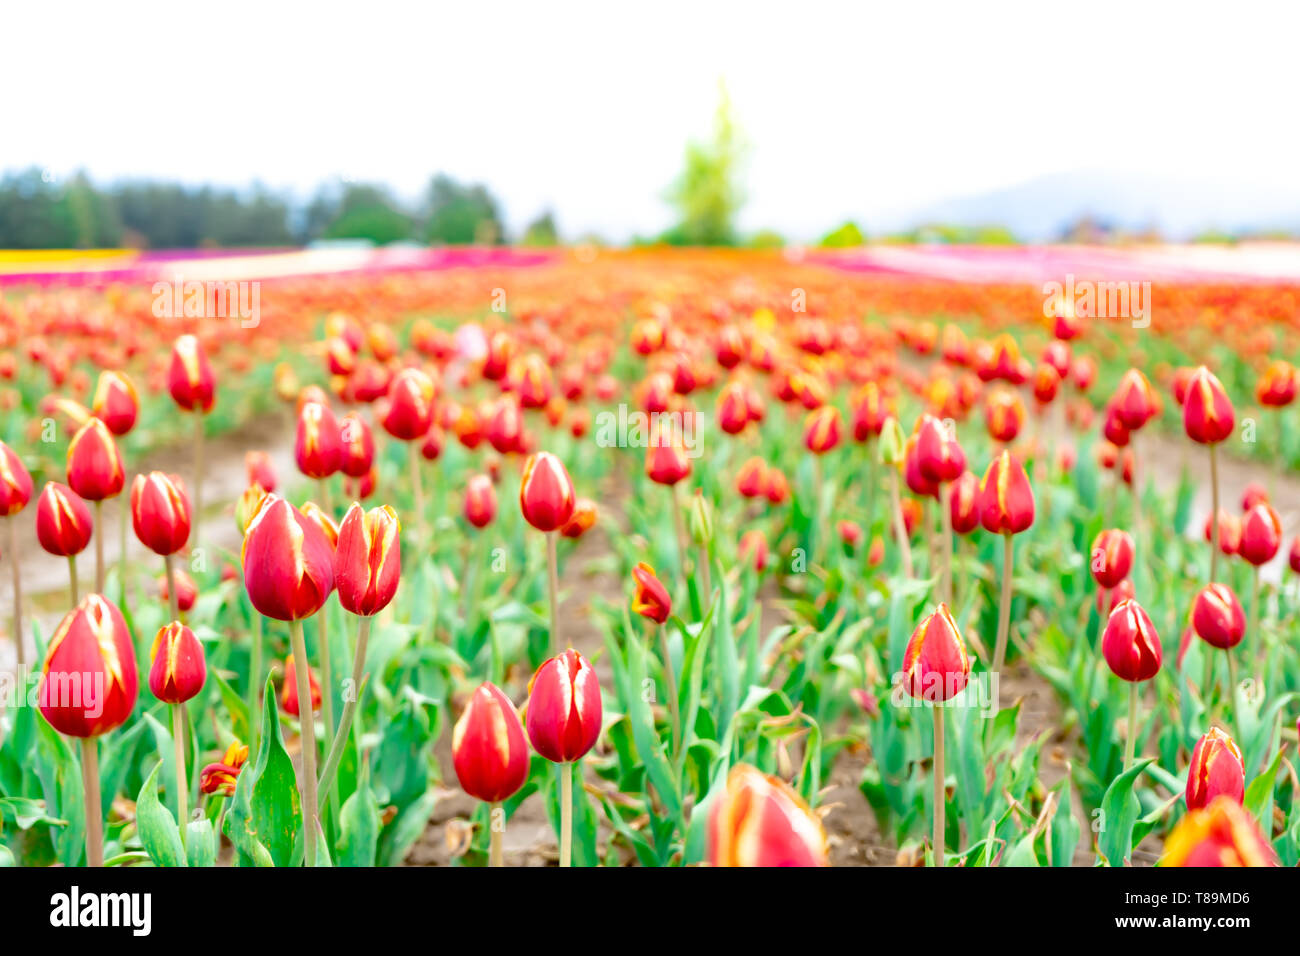 Landscape view of deep red and yellow tulip field, on a flower farm. Foreground focus with blurry distance showing a field of tulips. Red and orange h Stock Photo